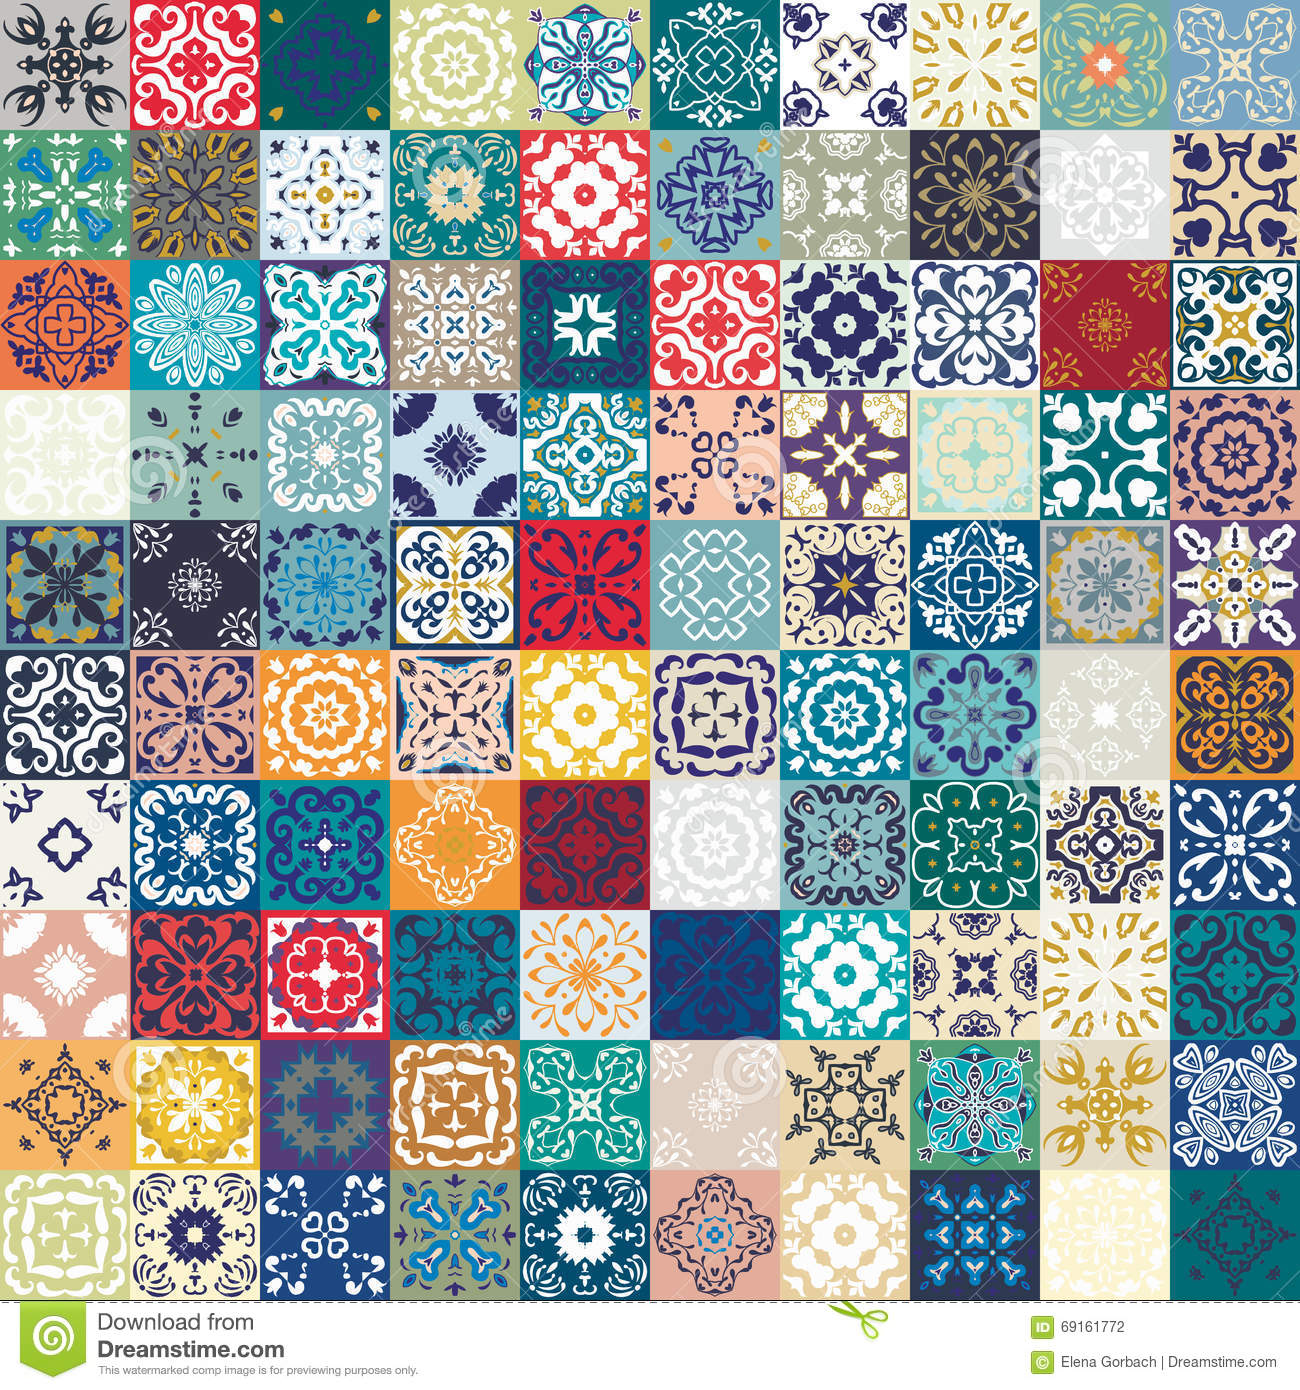 Mega gorgeous seamless patchwork pattern from colorful moroccan tiles orname - Papier peint patchwork ...